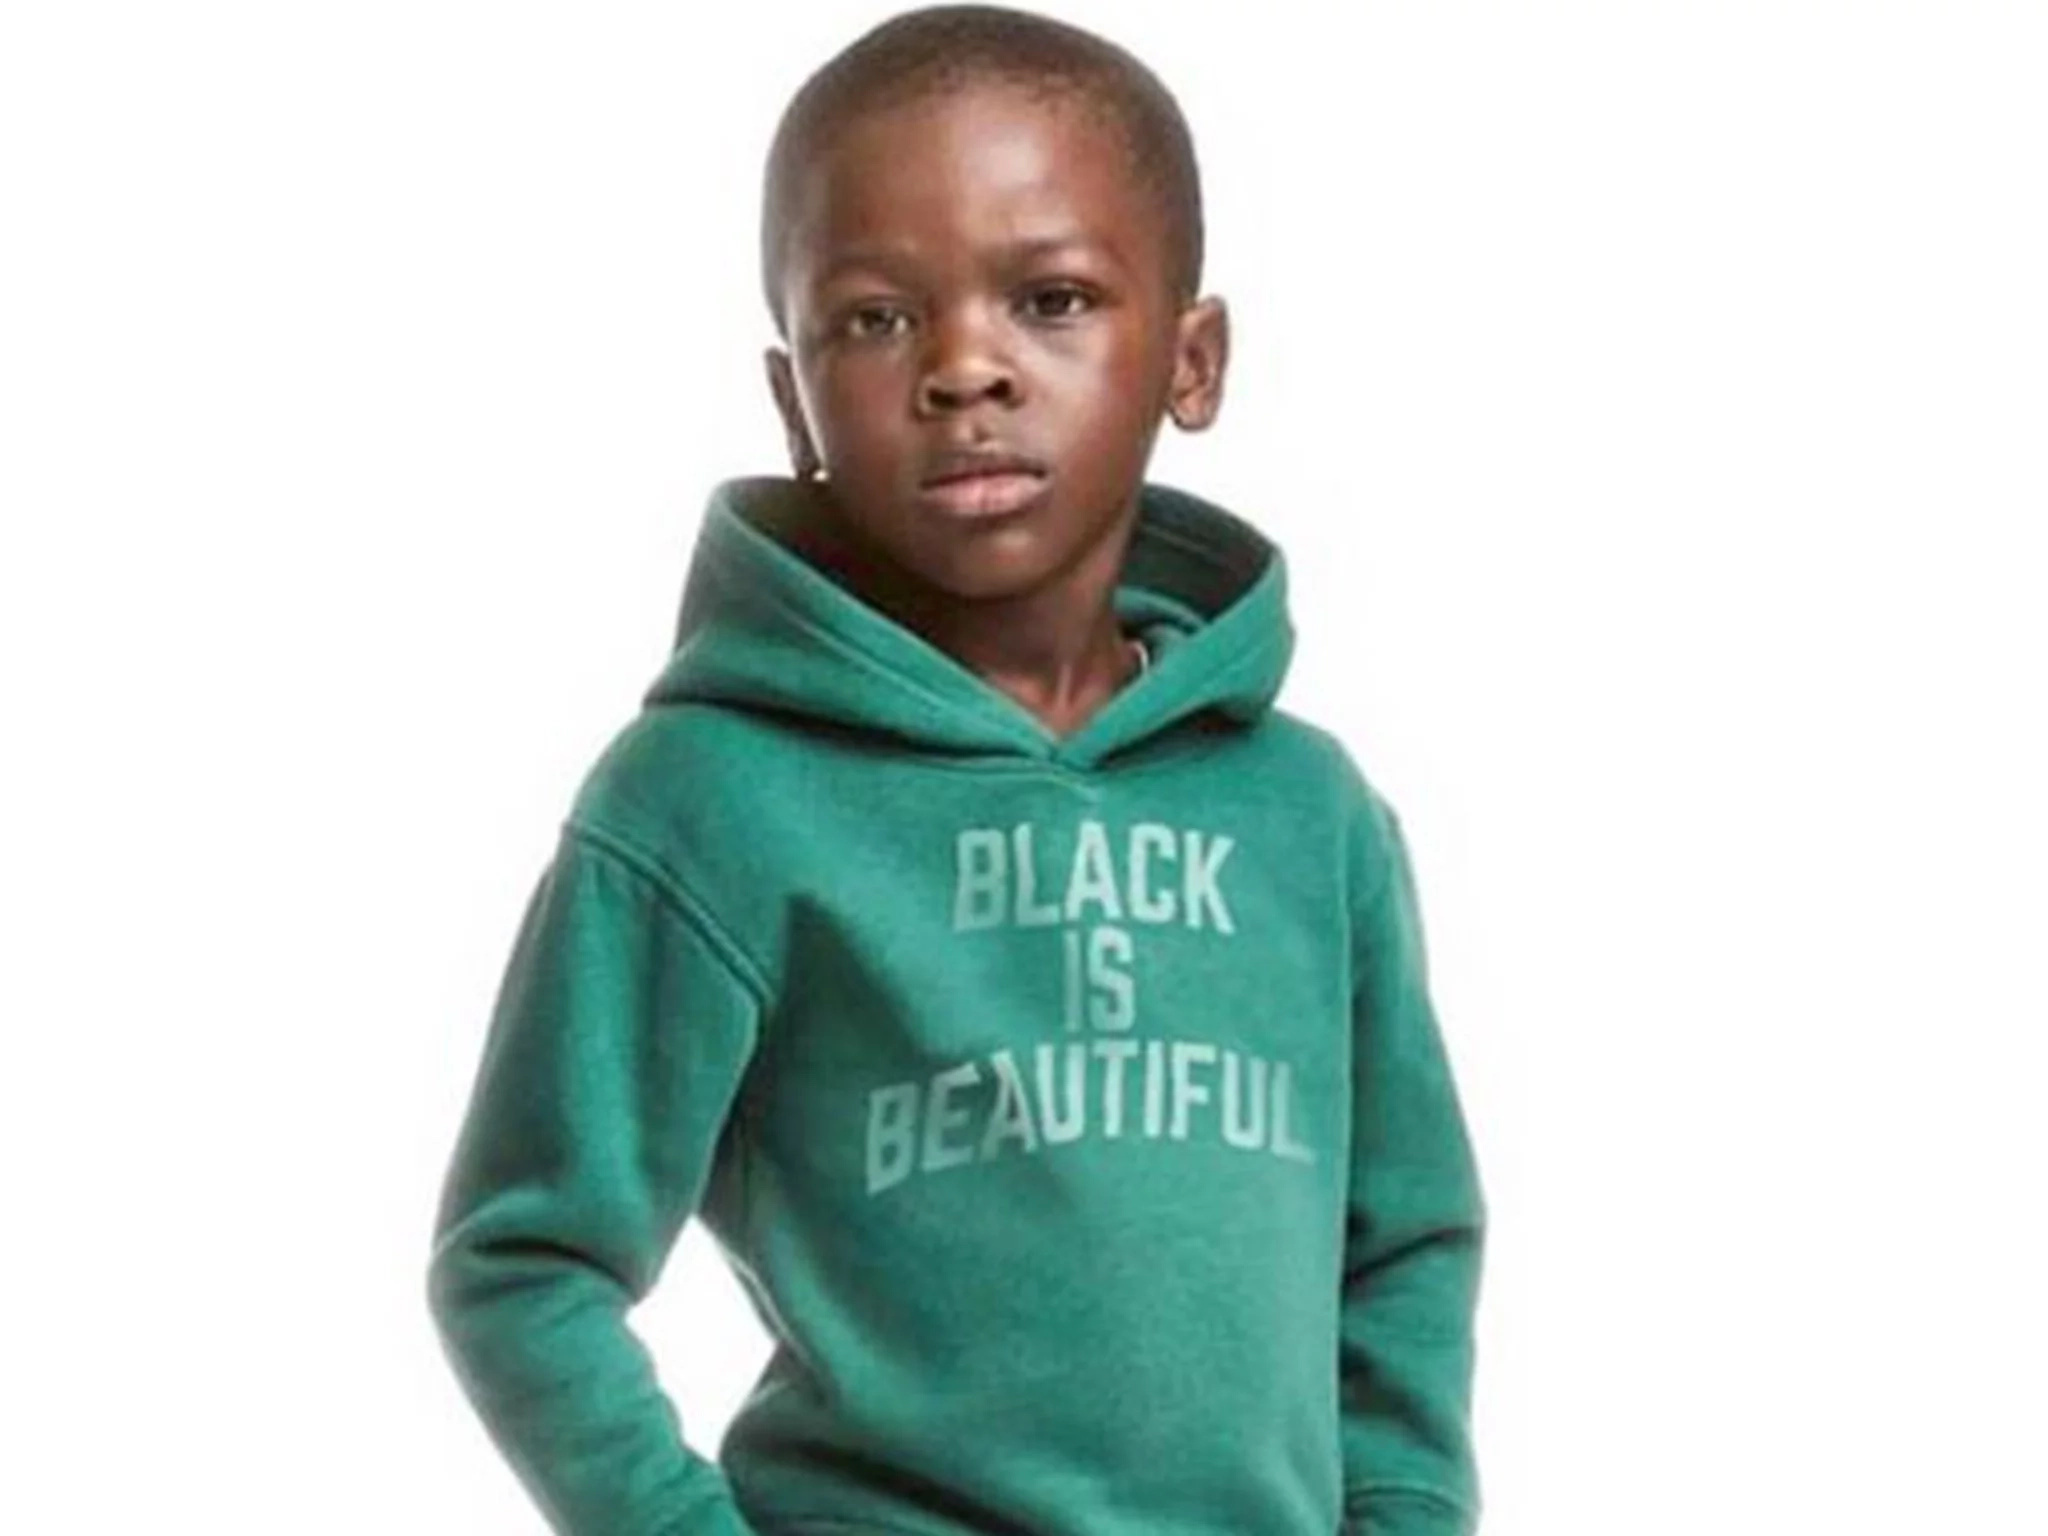 Man U star striker Lukaku hits back at H&M racist hoodie